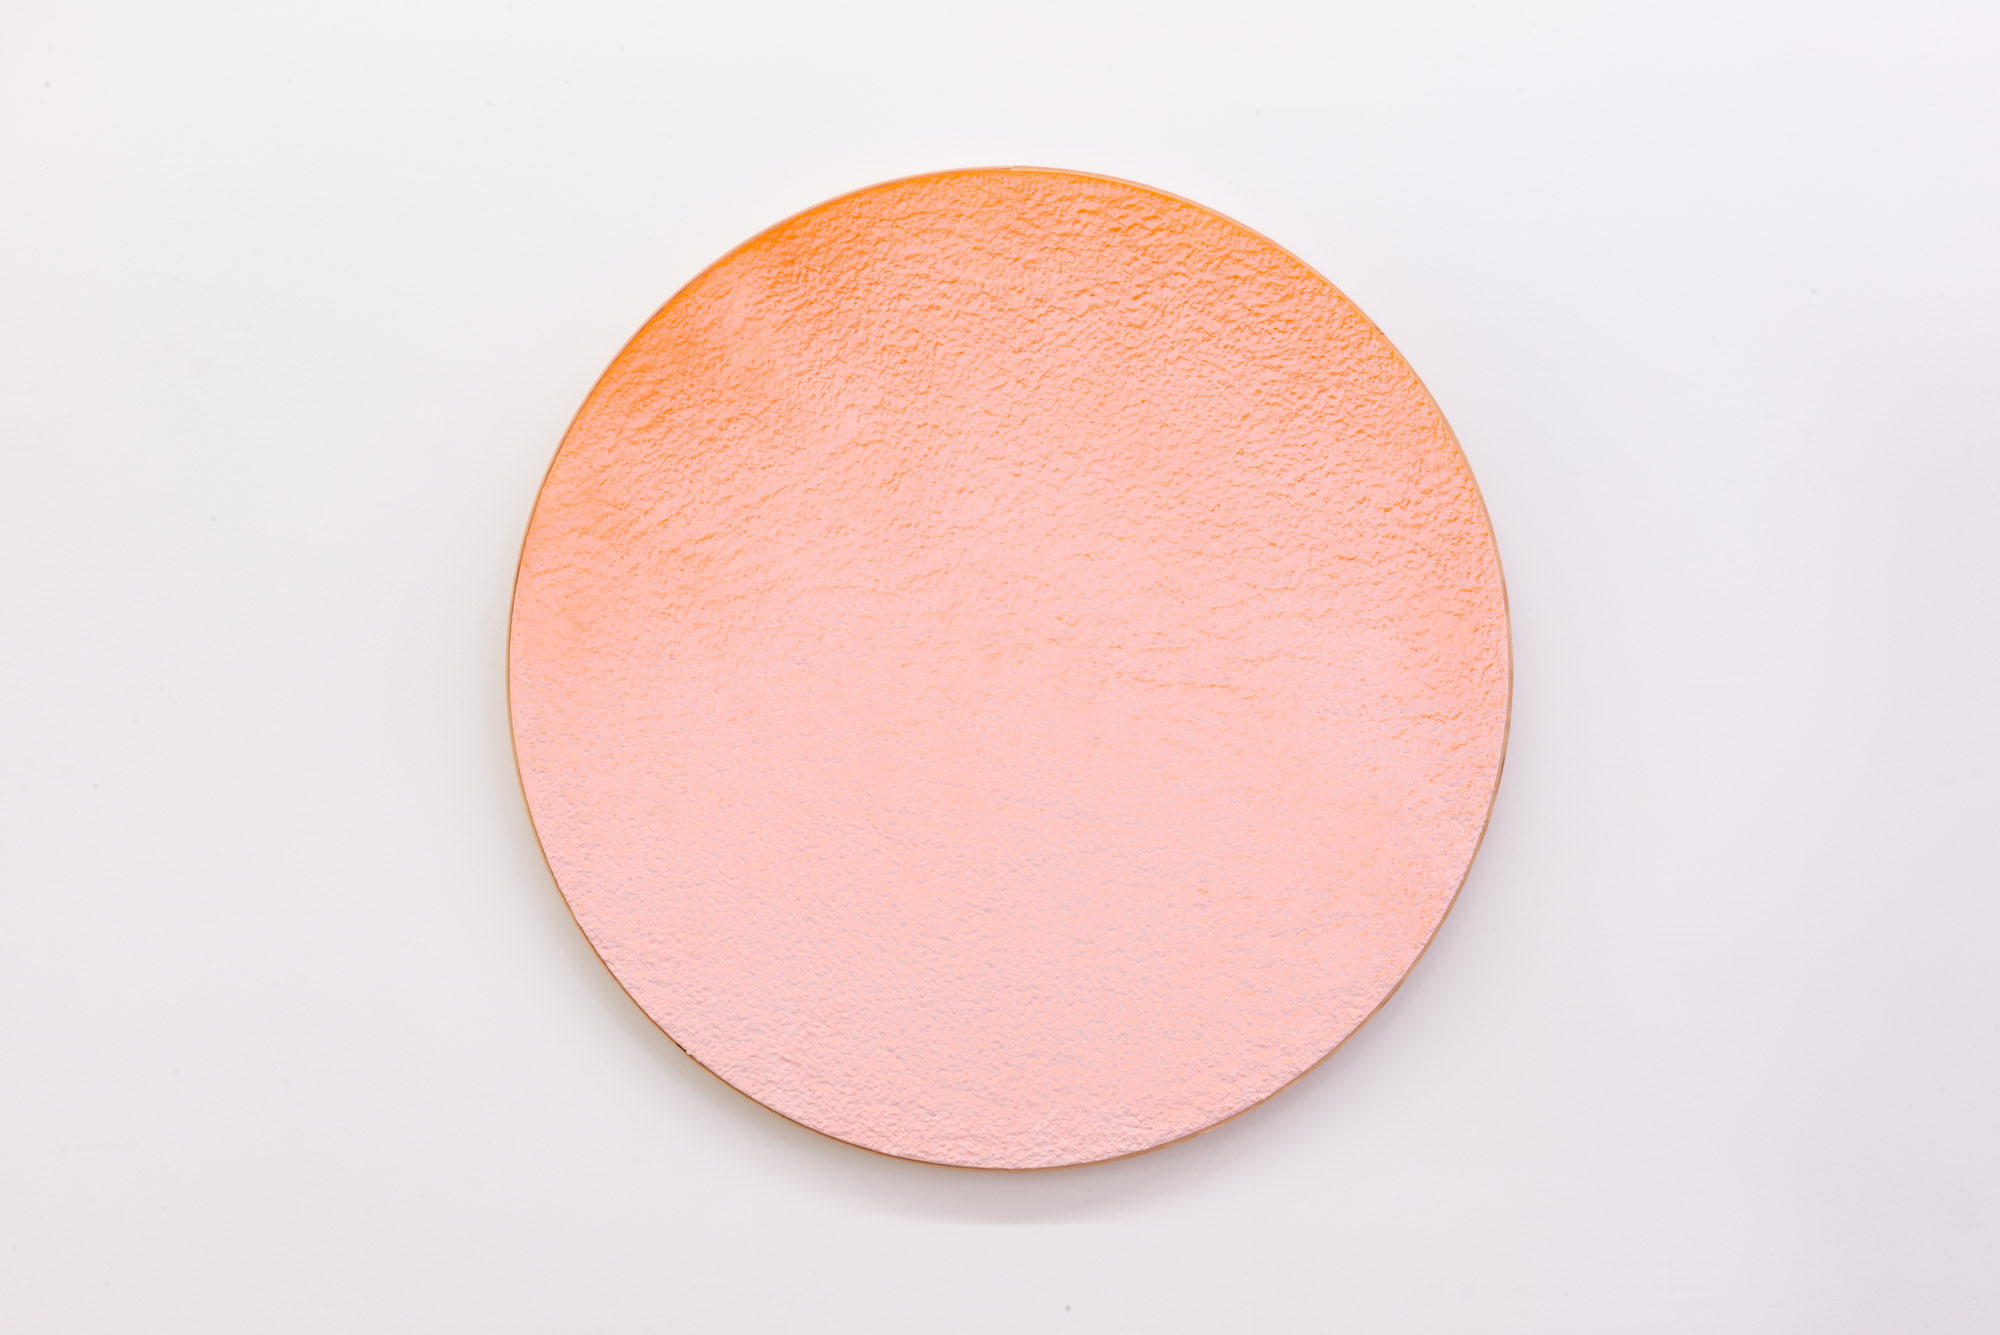 """Pierre Julien,  In the Deepest Oceans  - C002, 2018, stucco, acrylic and spray paint on wood panel, 30"""" diameter (76 cm)"""